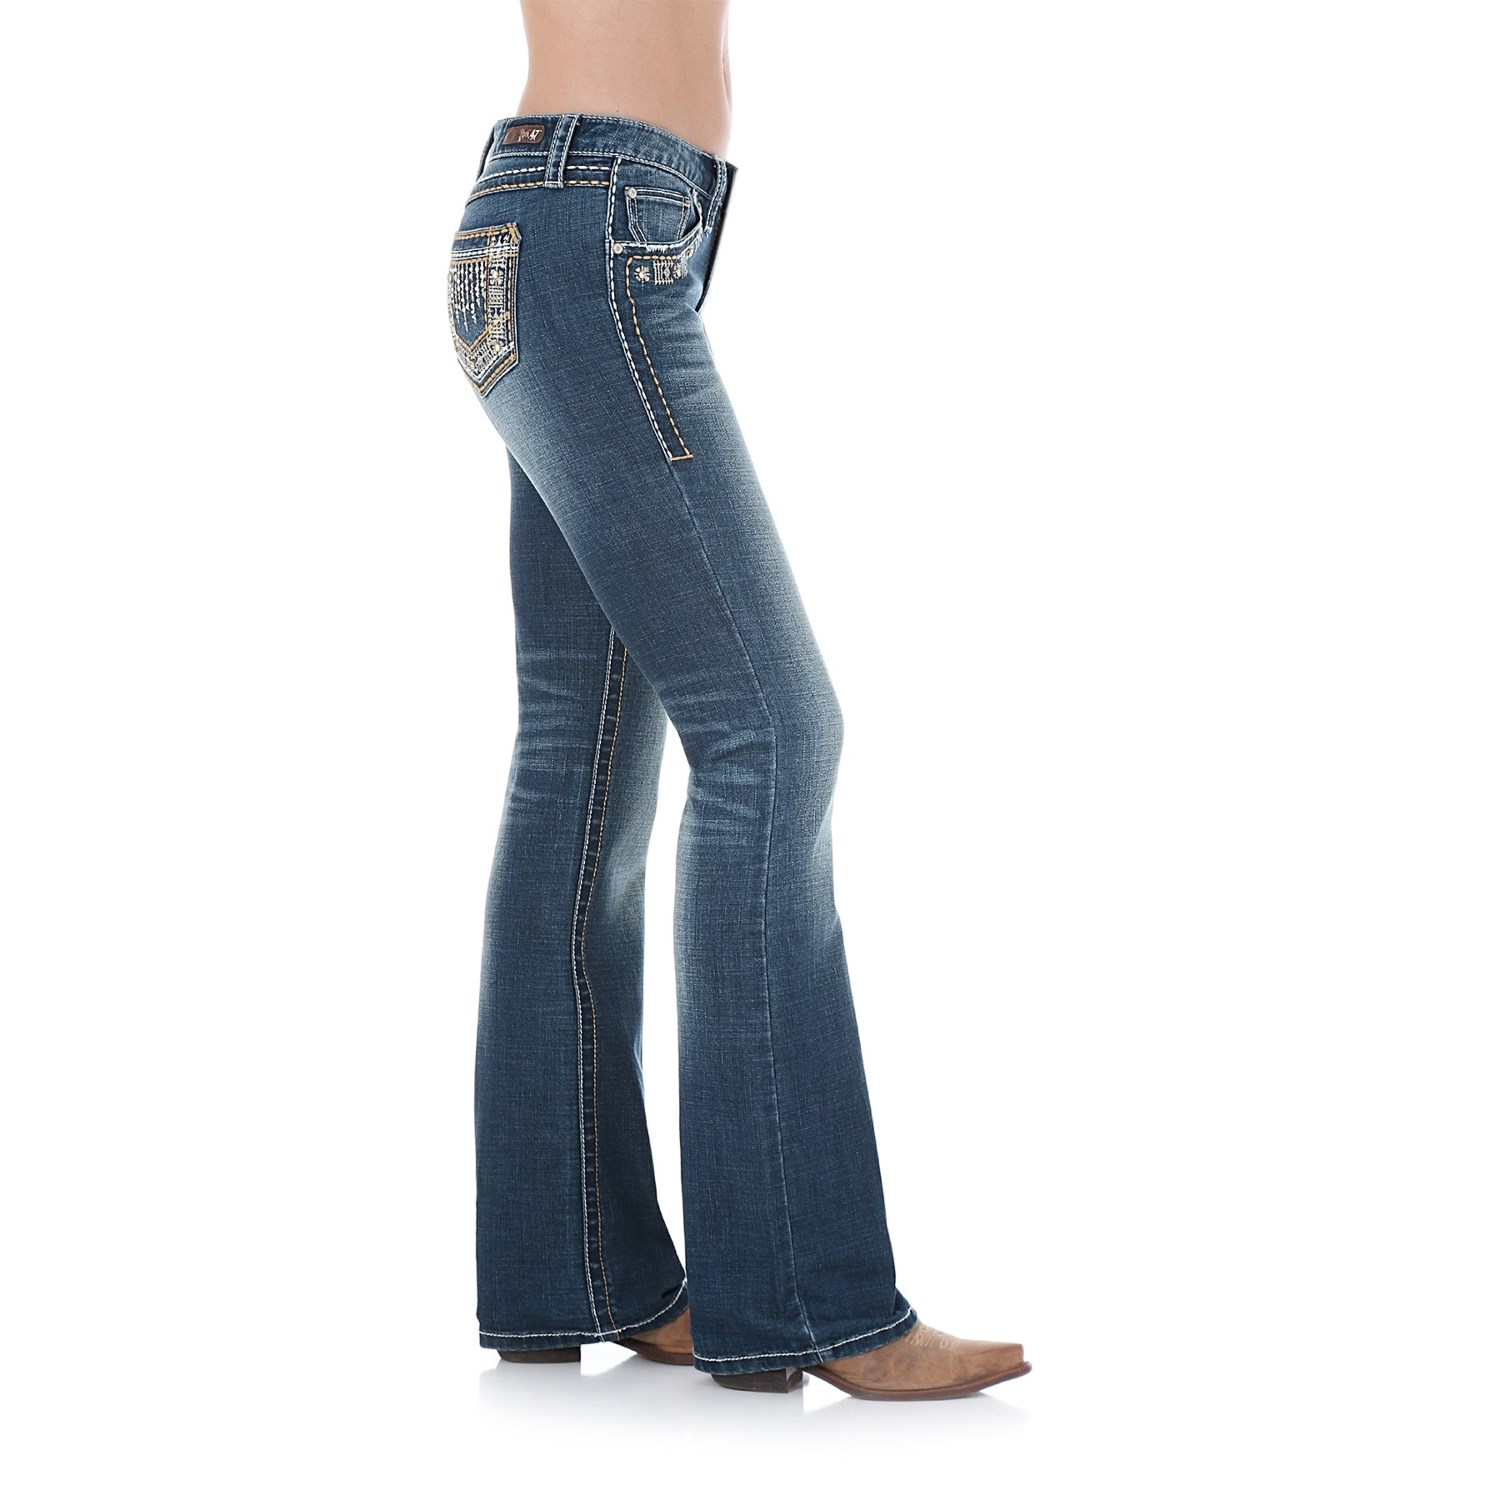 rise of women Discover low rise jeans for women with asos shop the best jeans brands at asos such as current elliot, mih jeans or j brand and find your perfect fit of jeans.